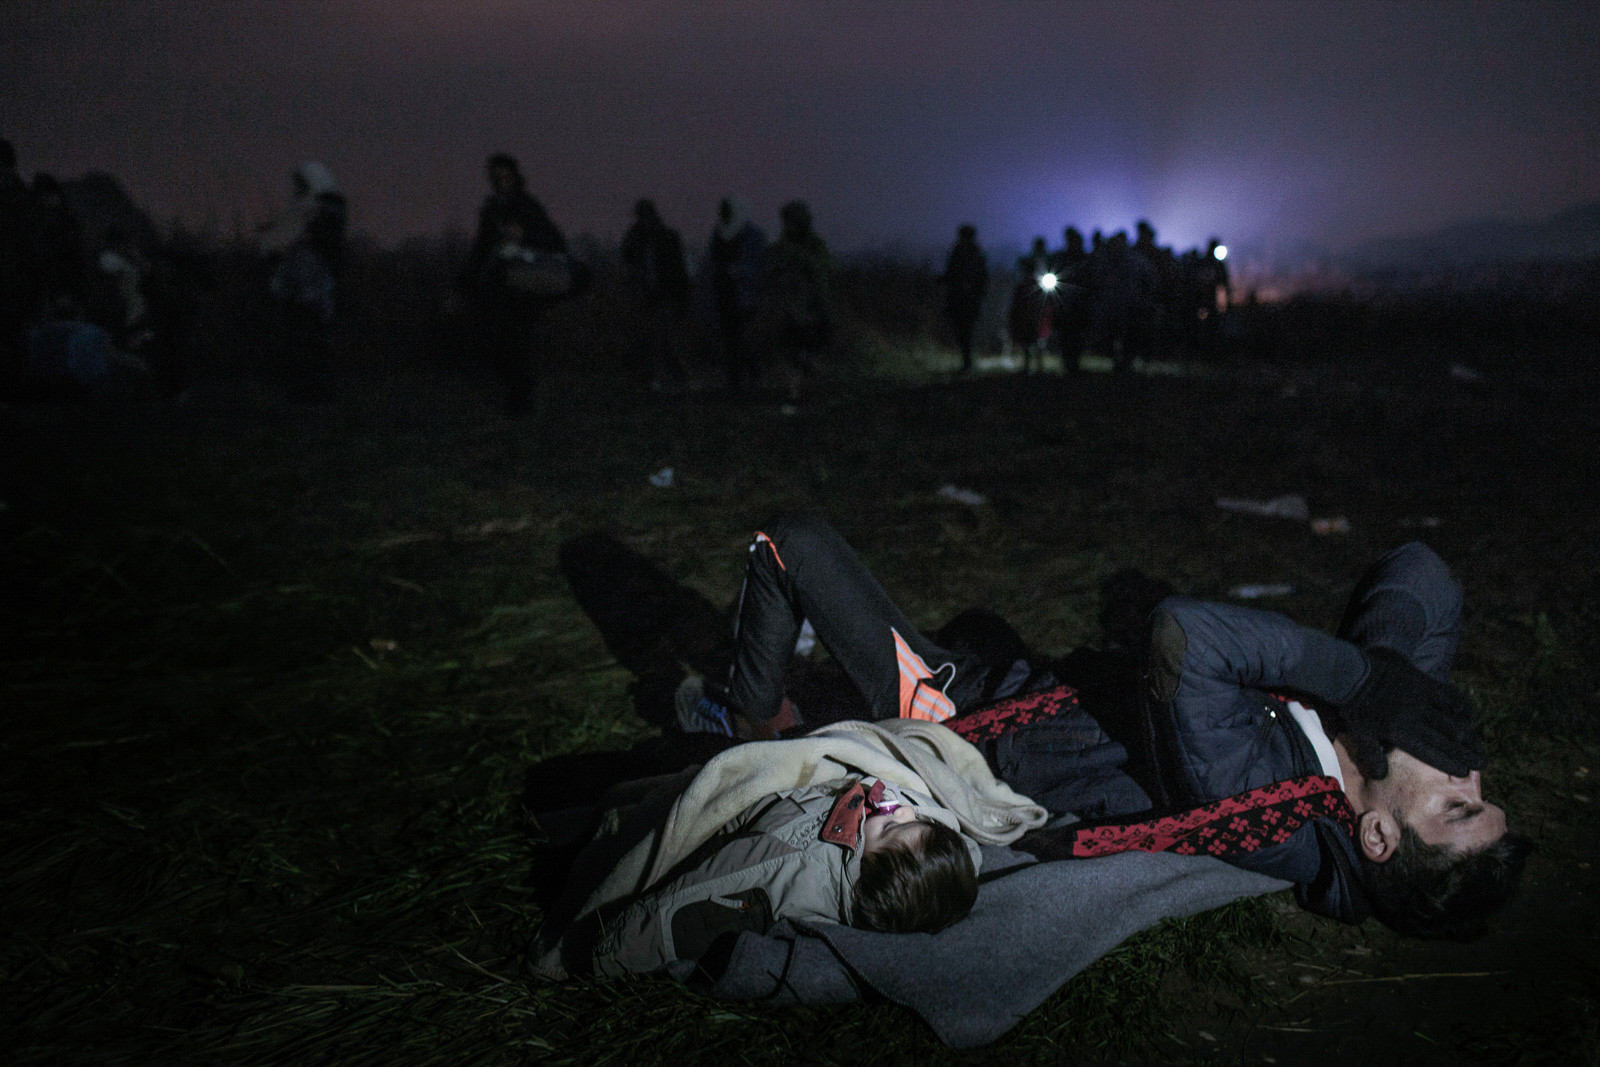 Brežice, Slovenia - October 26, 2015: Refugees walk about eight kilometers towards the refugee registration center in Brezice during the night. Some tired ones stop to rest in open fields. Khalil, a Kurd from Syria has lost his family somewhere inside that colossal group of people. In absolute desperation, he had no choice but to lay down the field with his baby, shouting the name of his loved ones as he awaits for them.